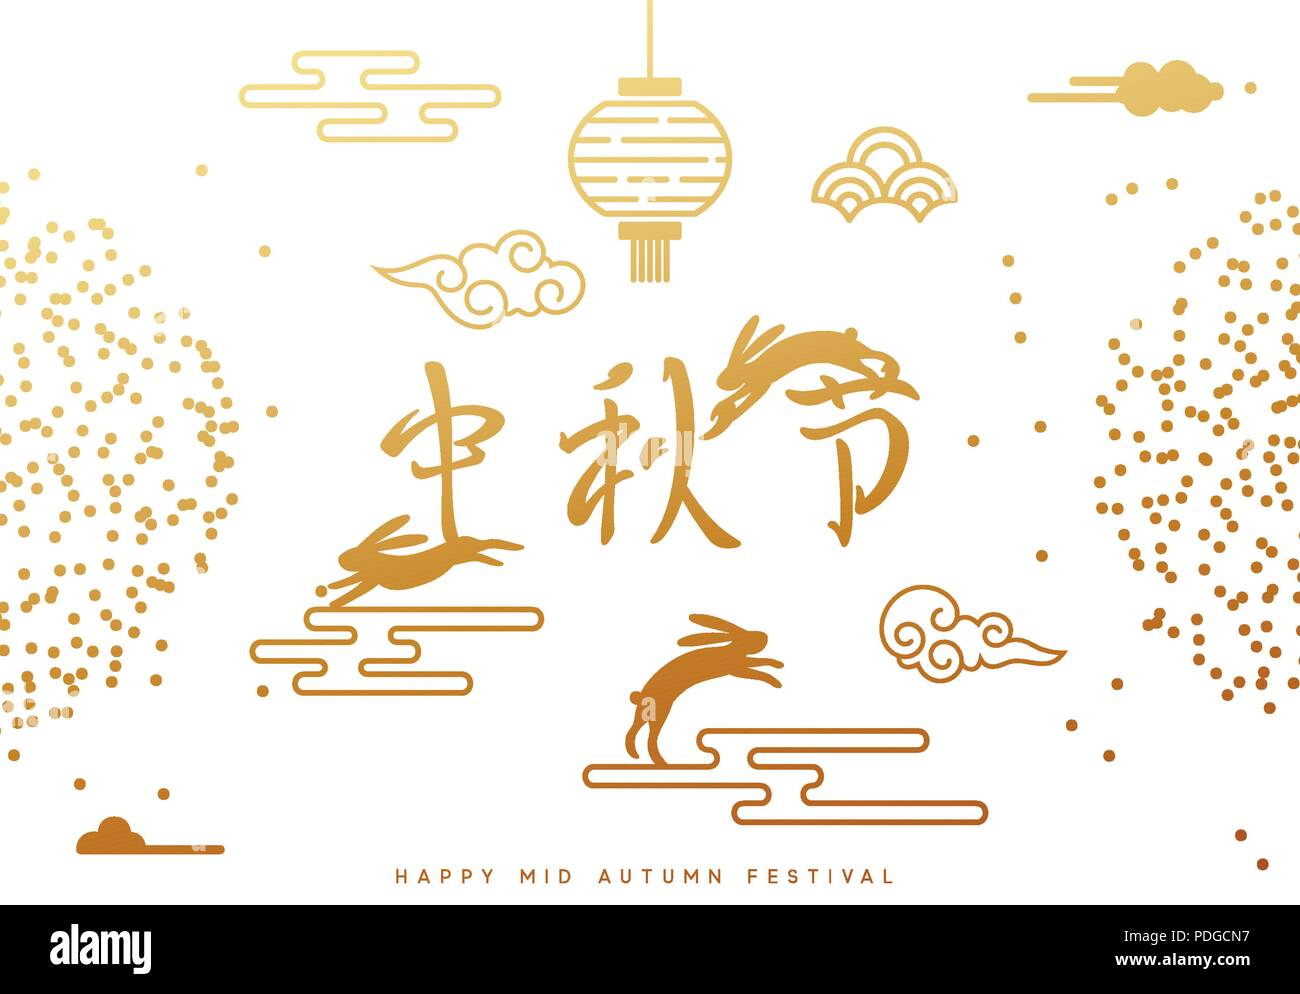 Mid autumn festival national holiday in china the lettering mid autumn festival national holiday in china the lettering hieroglyph of mid autumn festival greeting background banner and poster m4hsunfo